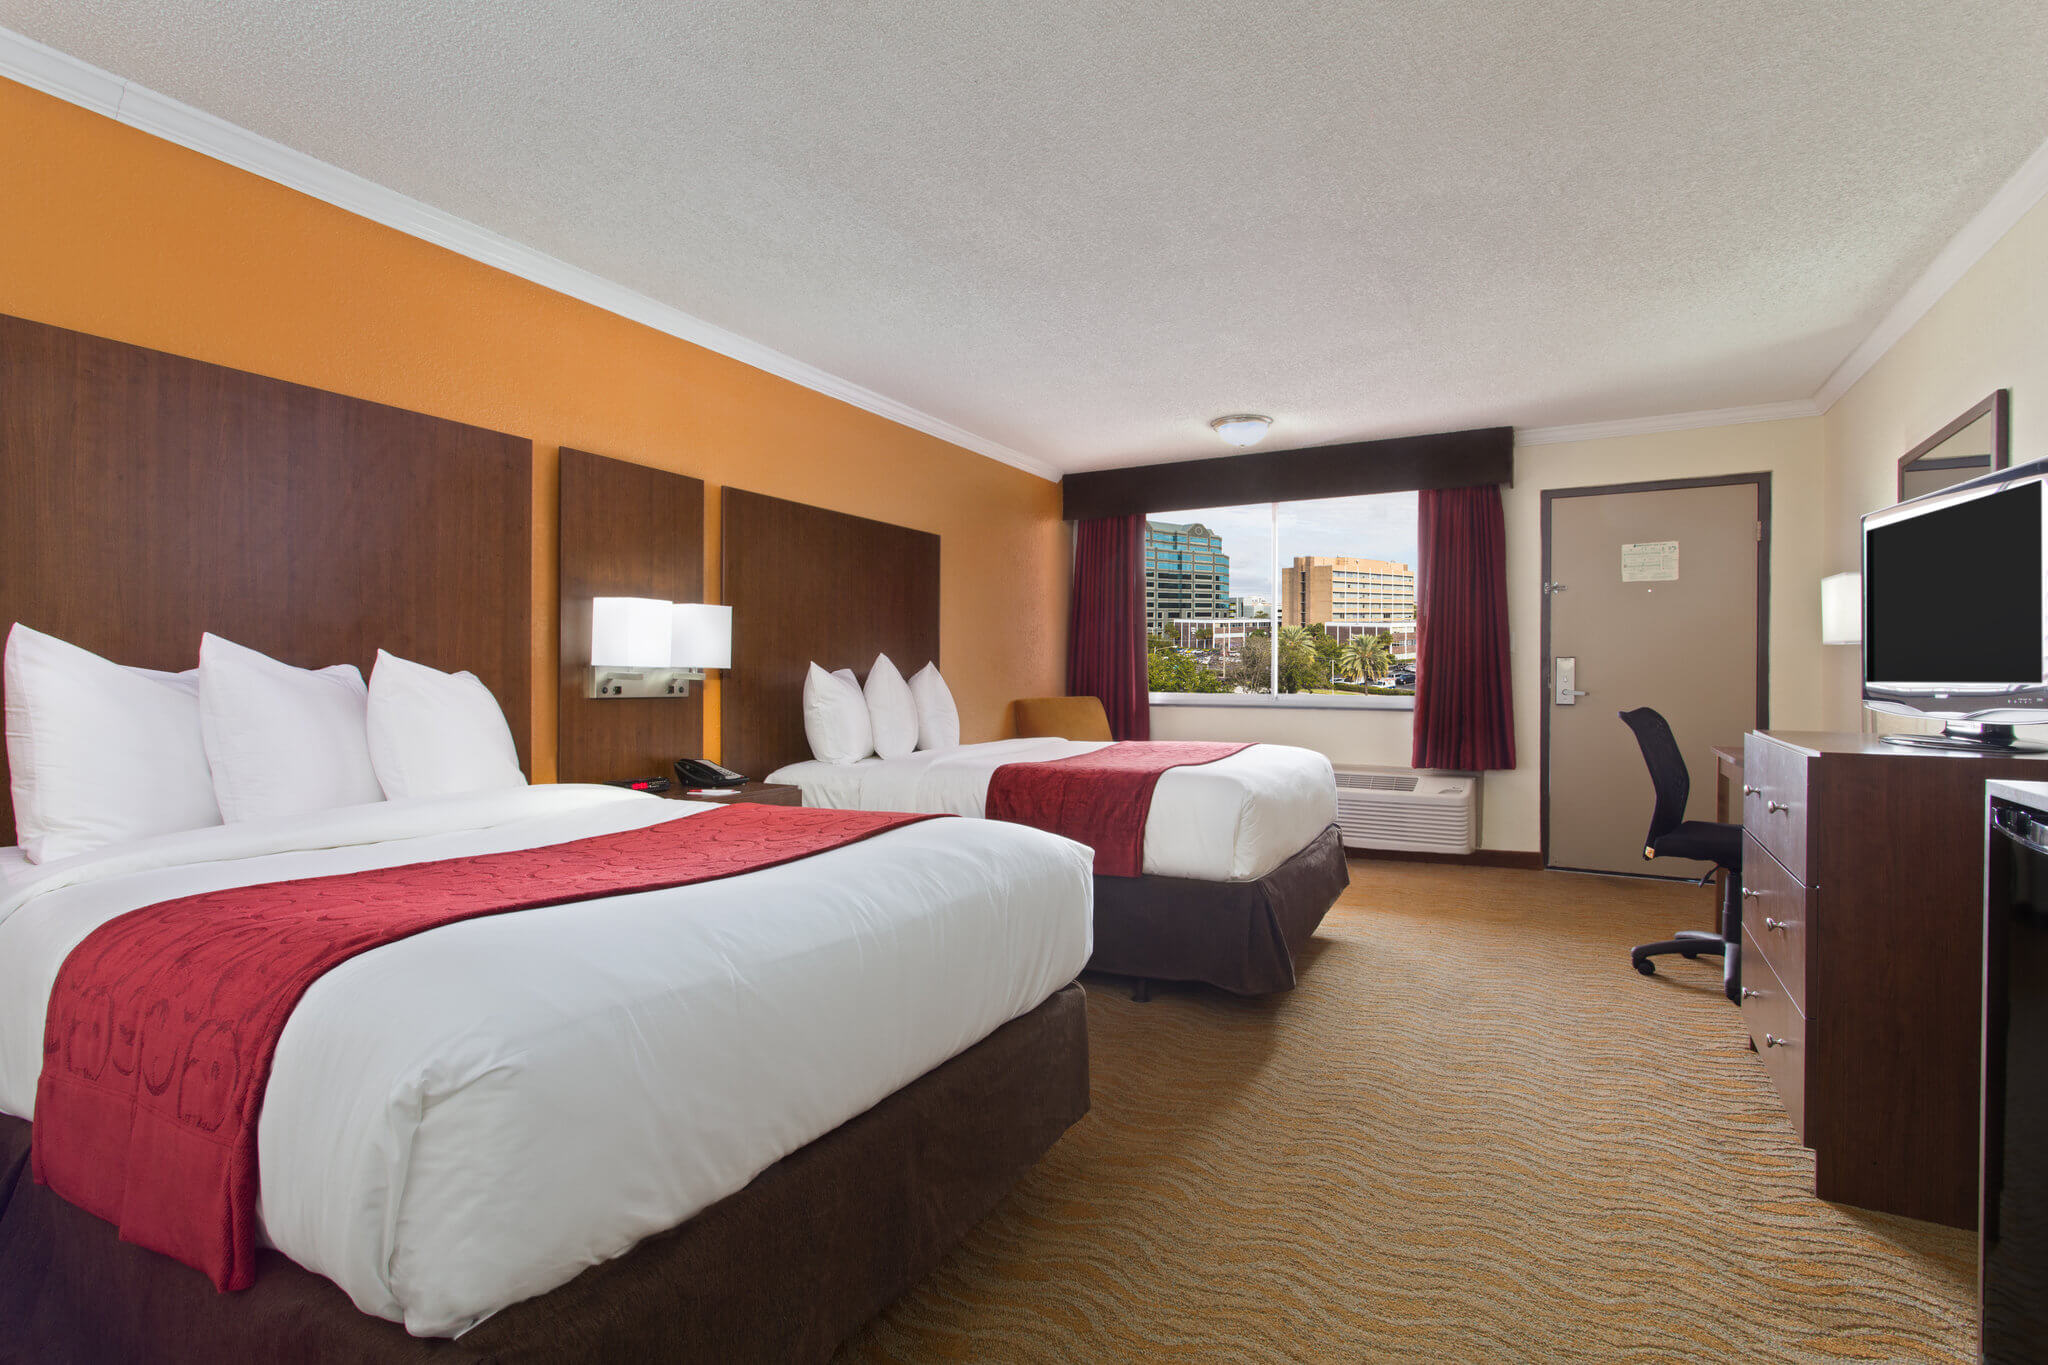 Ramada Westshore Bedroom